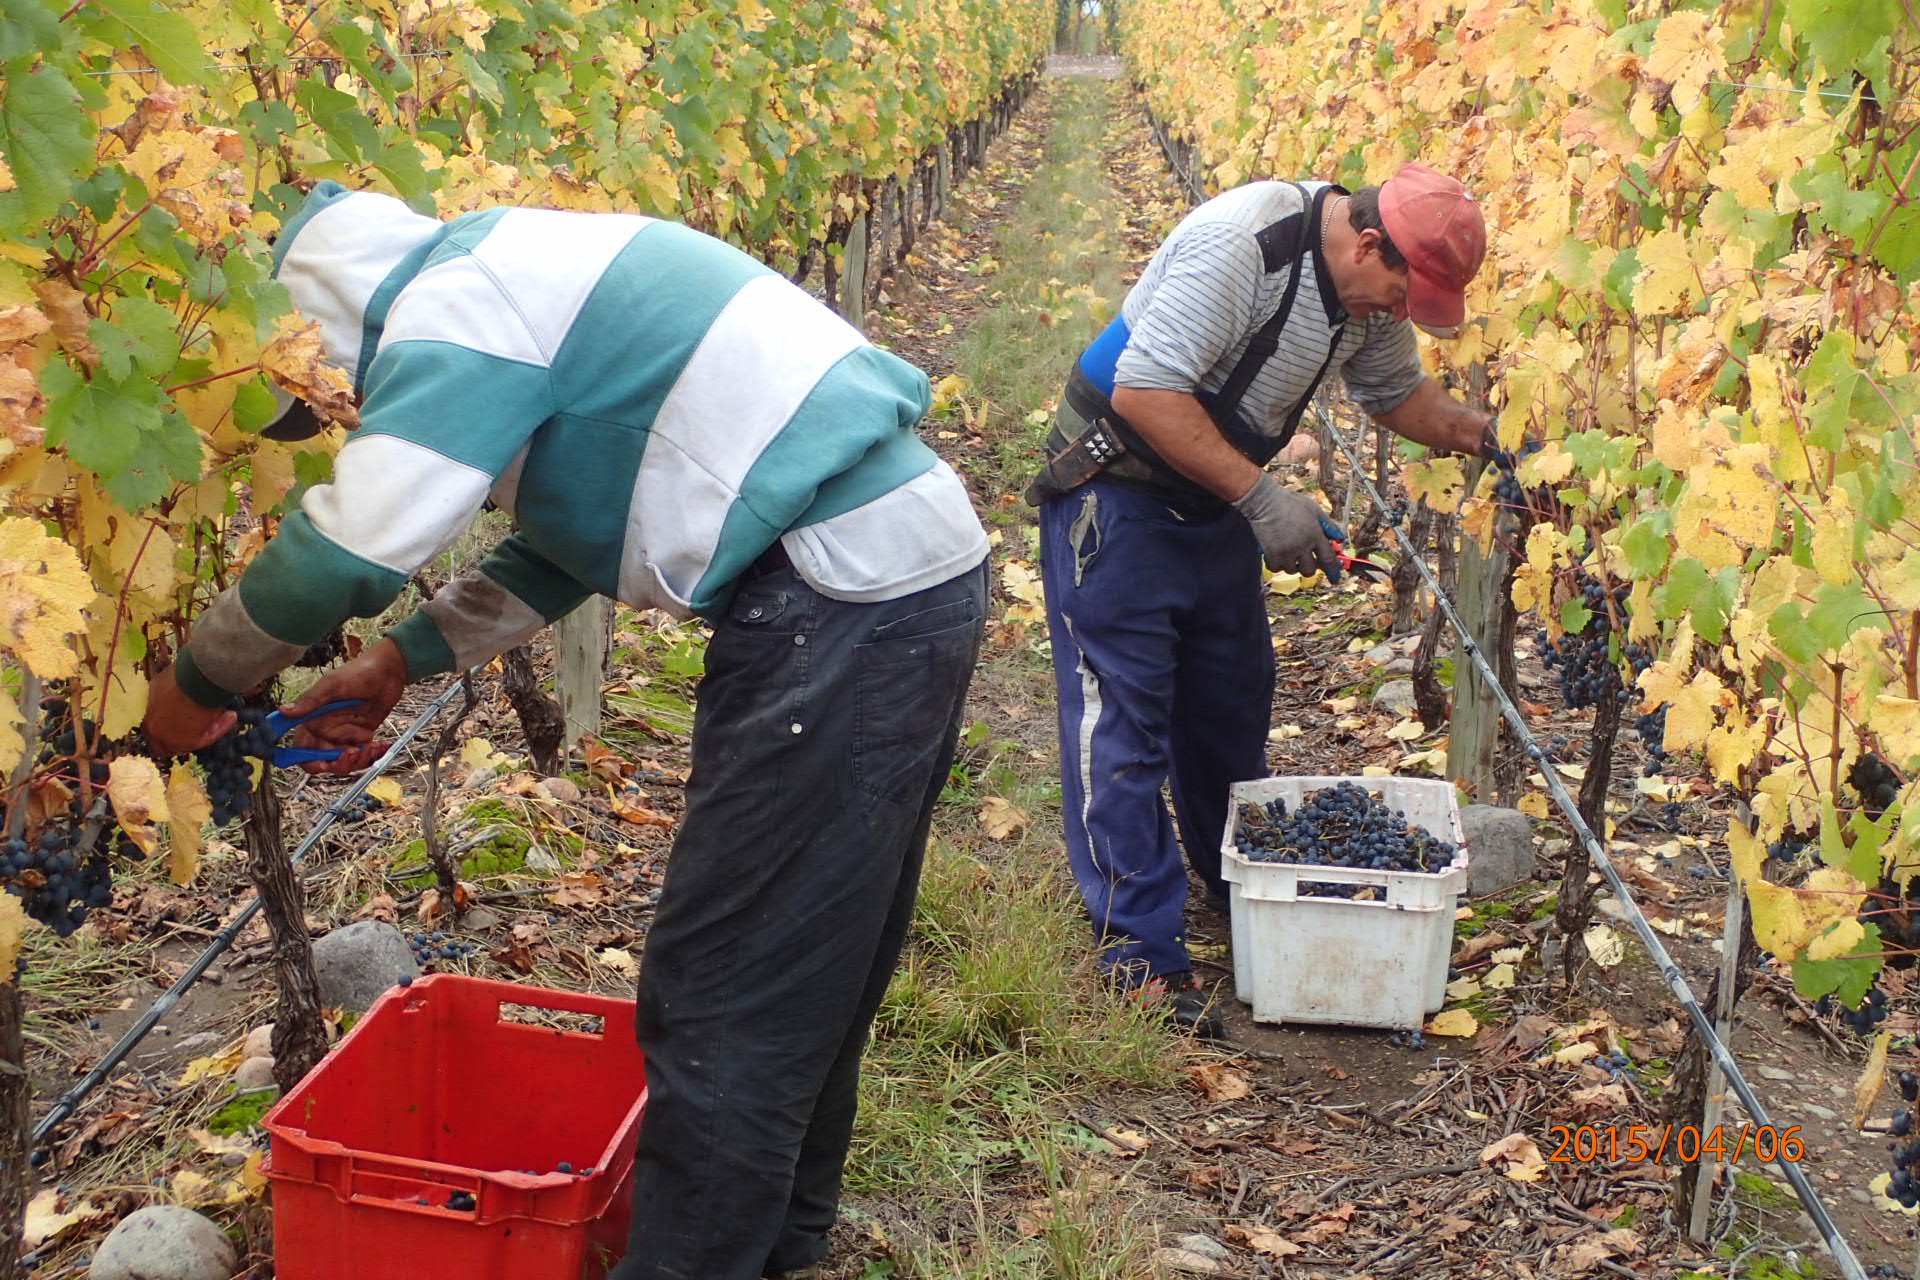 One of trained vineyard team workers carrying grapes during the morning harvest. Vina Andrico vineyard in Mendoza, Argentina.